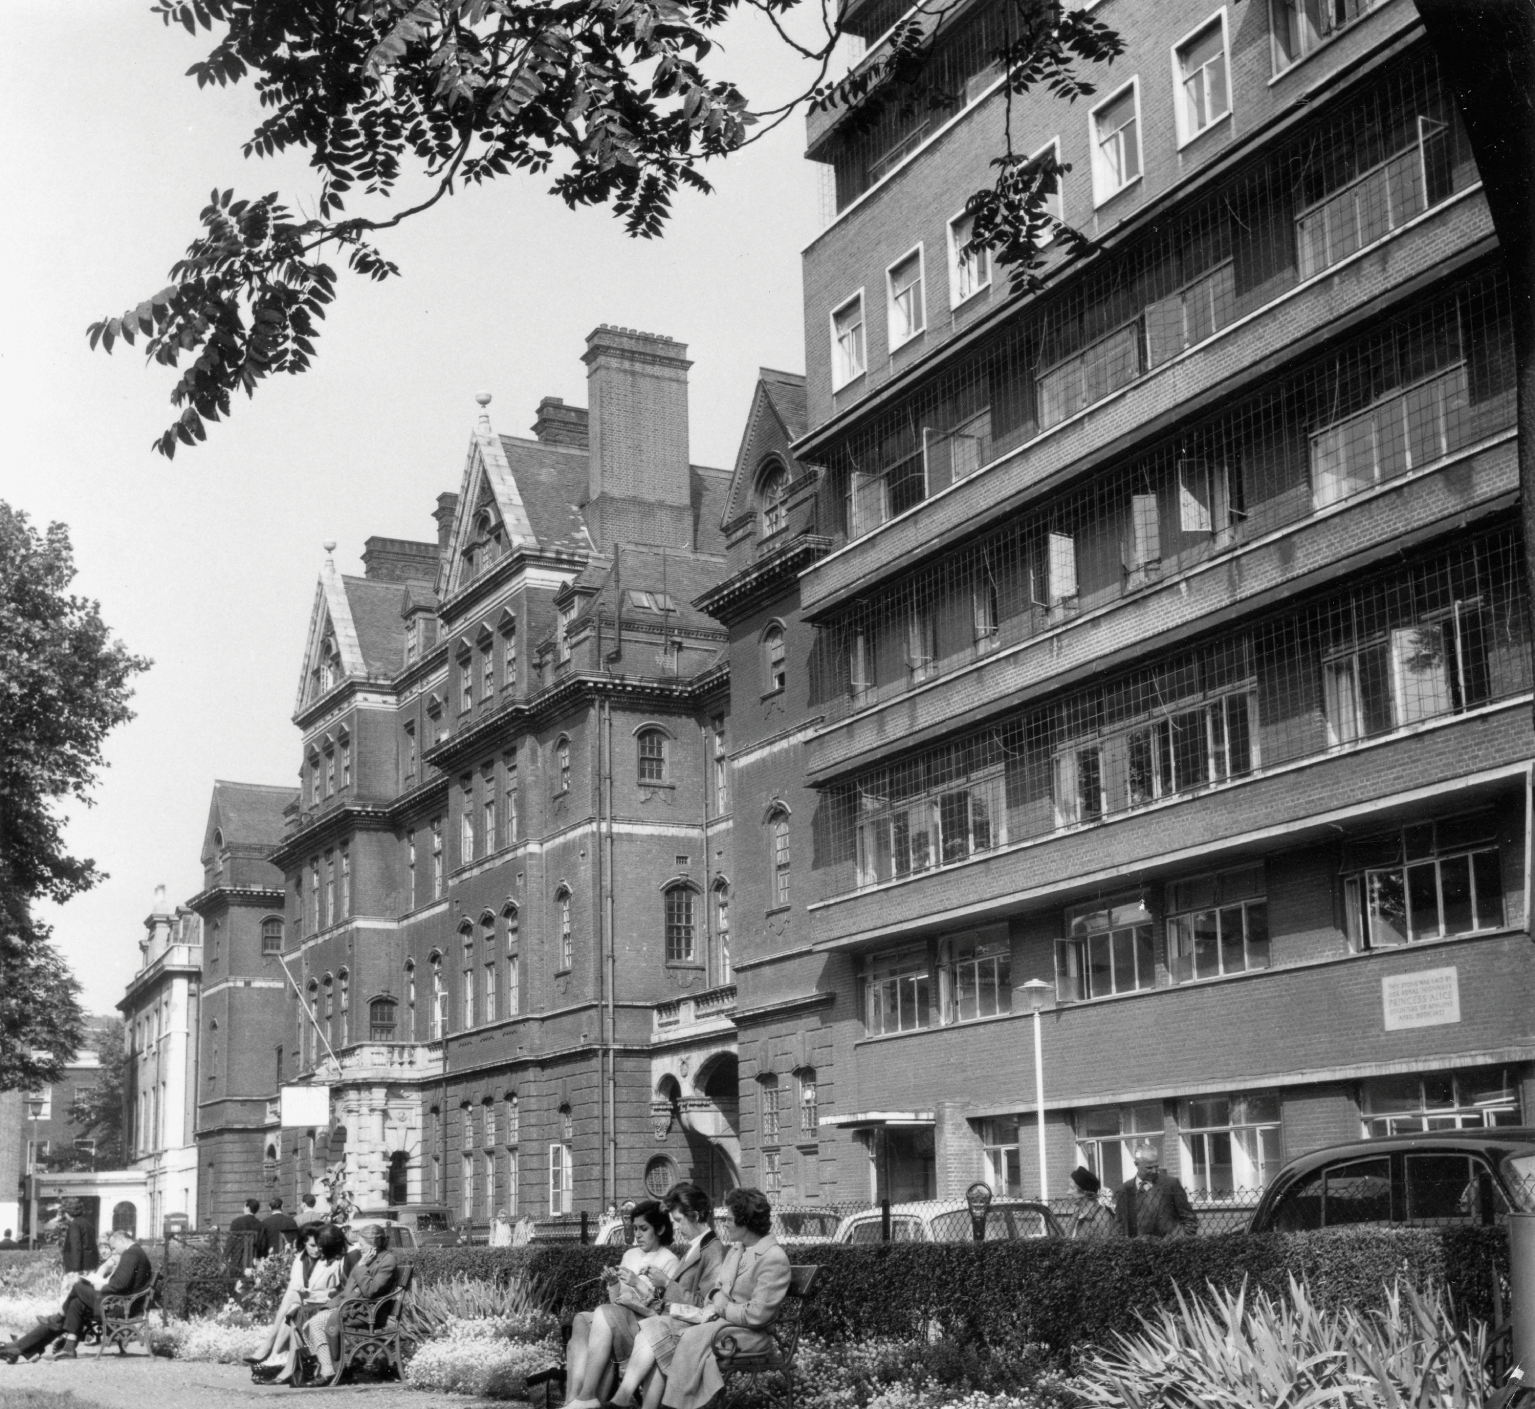 Queen Square, the Salmon Pink and Other Hospital Buildings